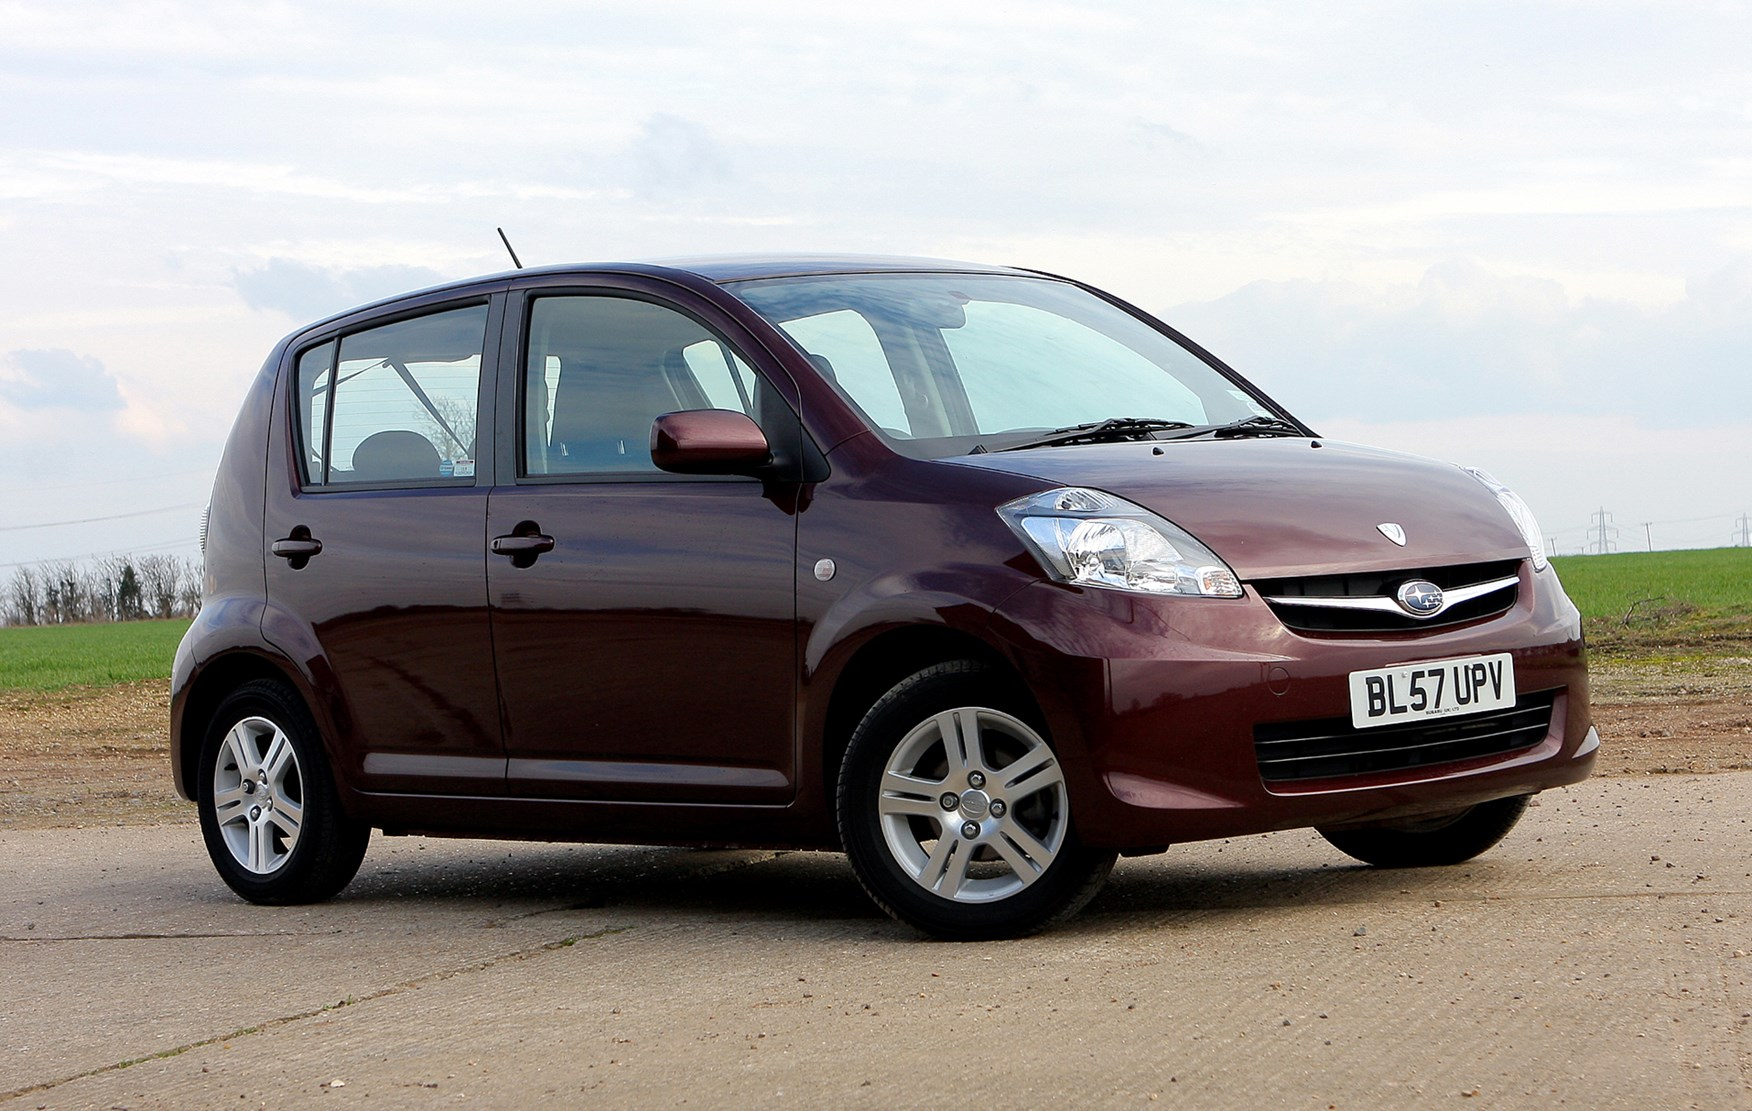 Subaru Justy Hatchback Review 2007 2009 Parkers